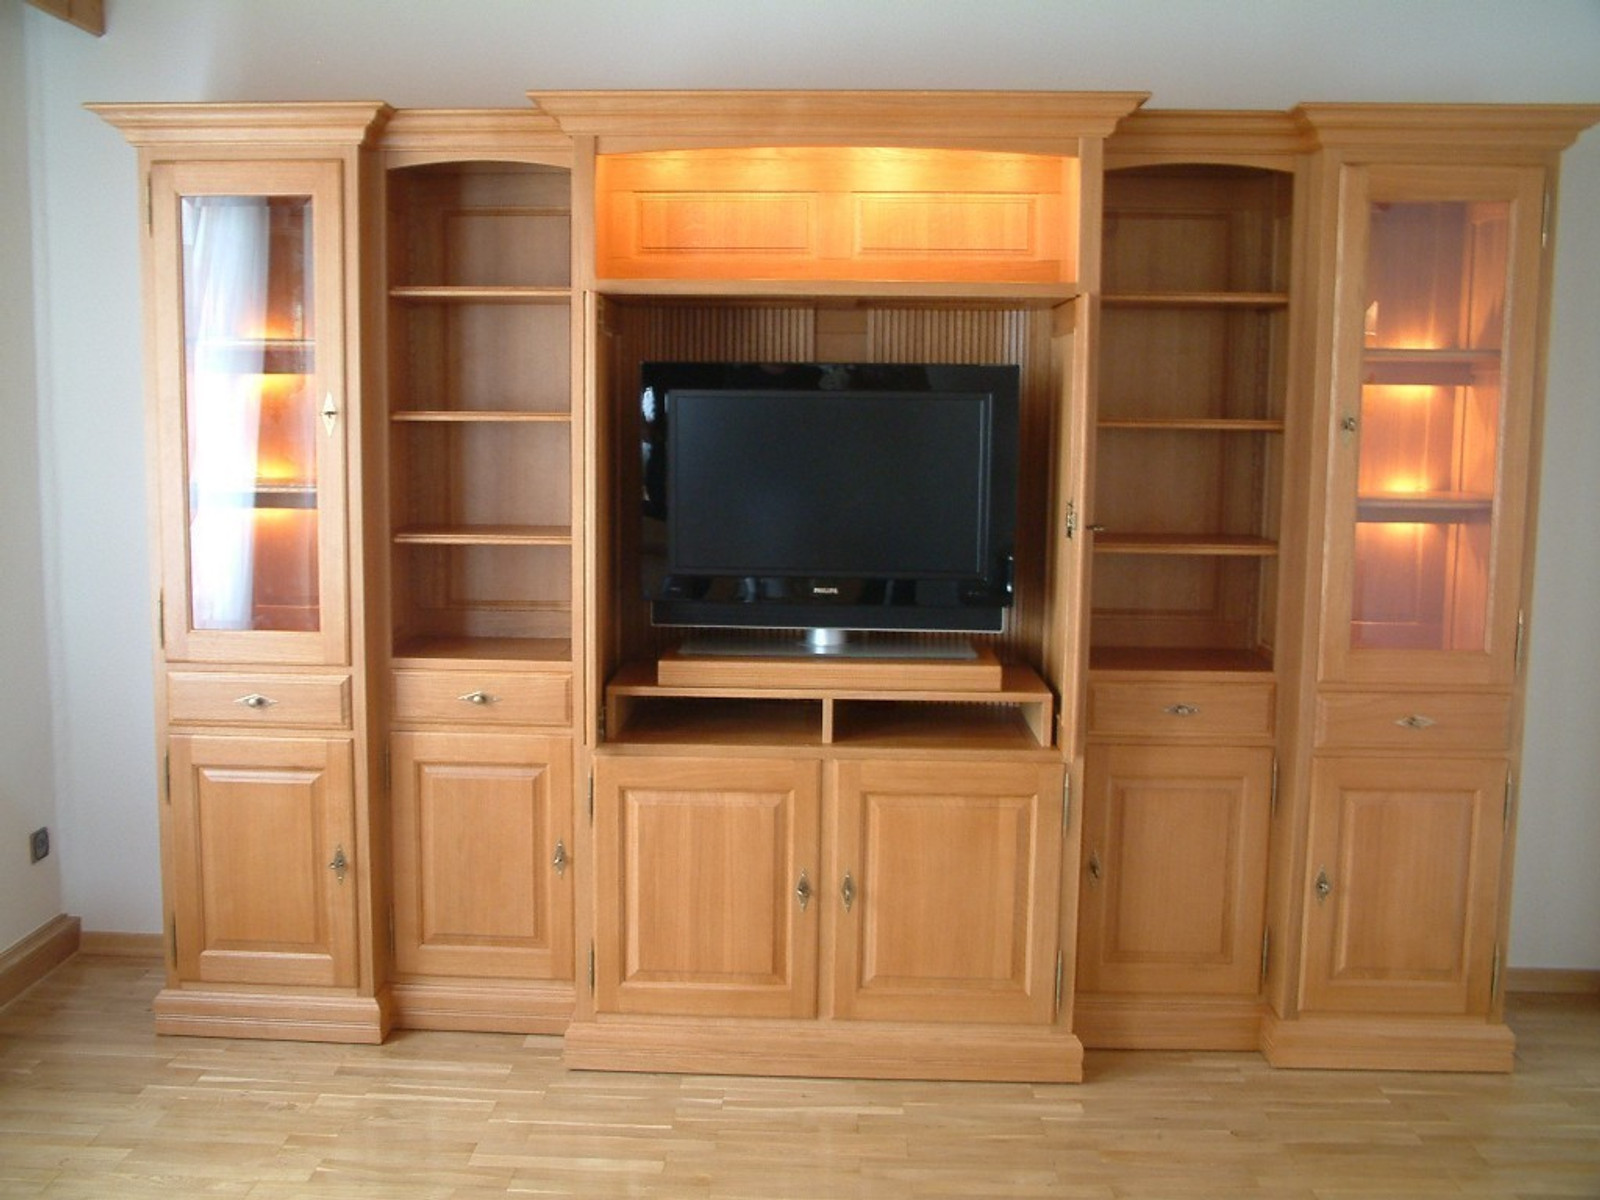 wohnzimmerschrank ohne fernsehfach wohn design. Black Bedroom Furniture Sets. Home Design Ideas